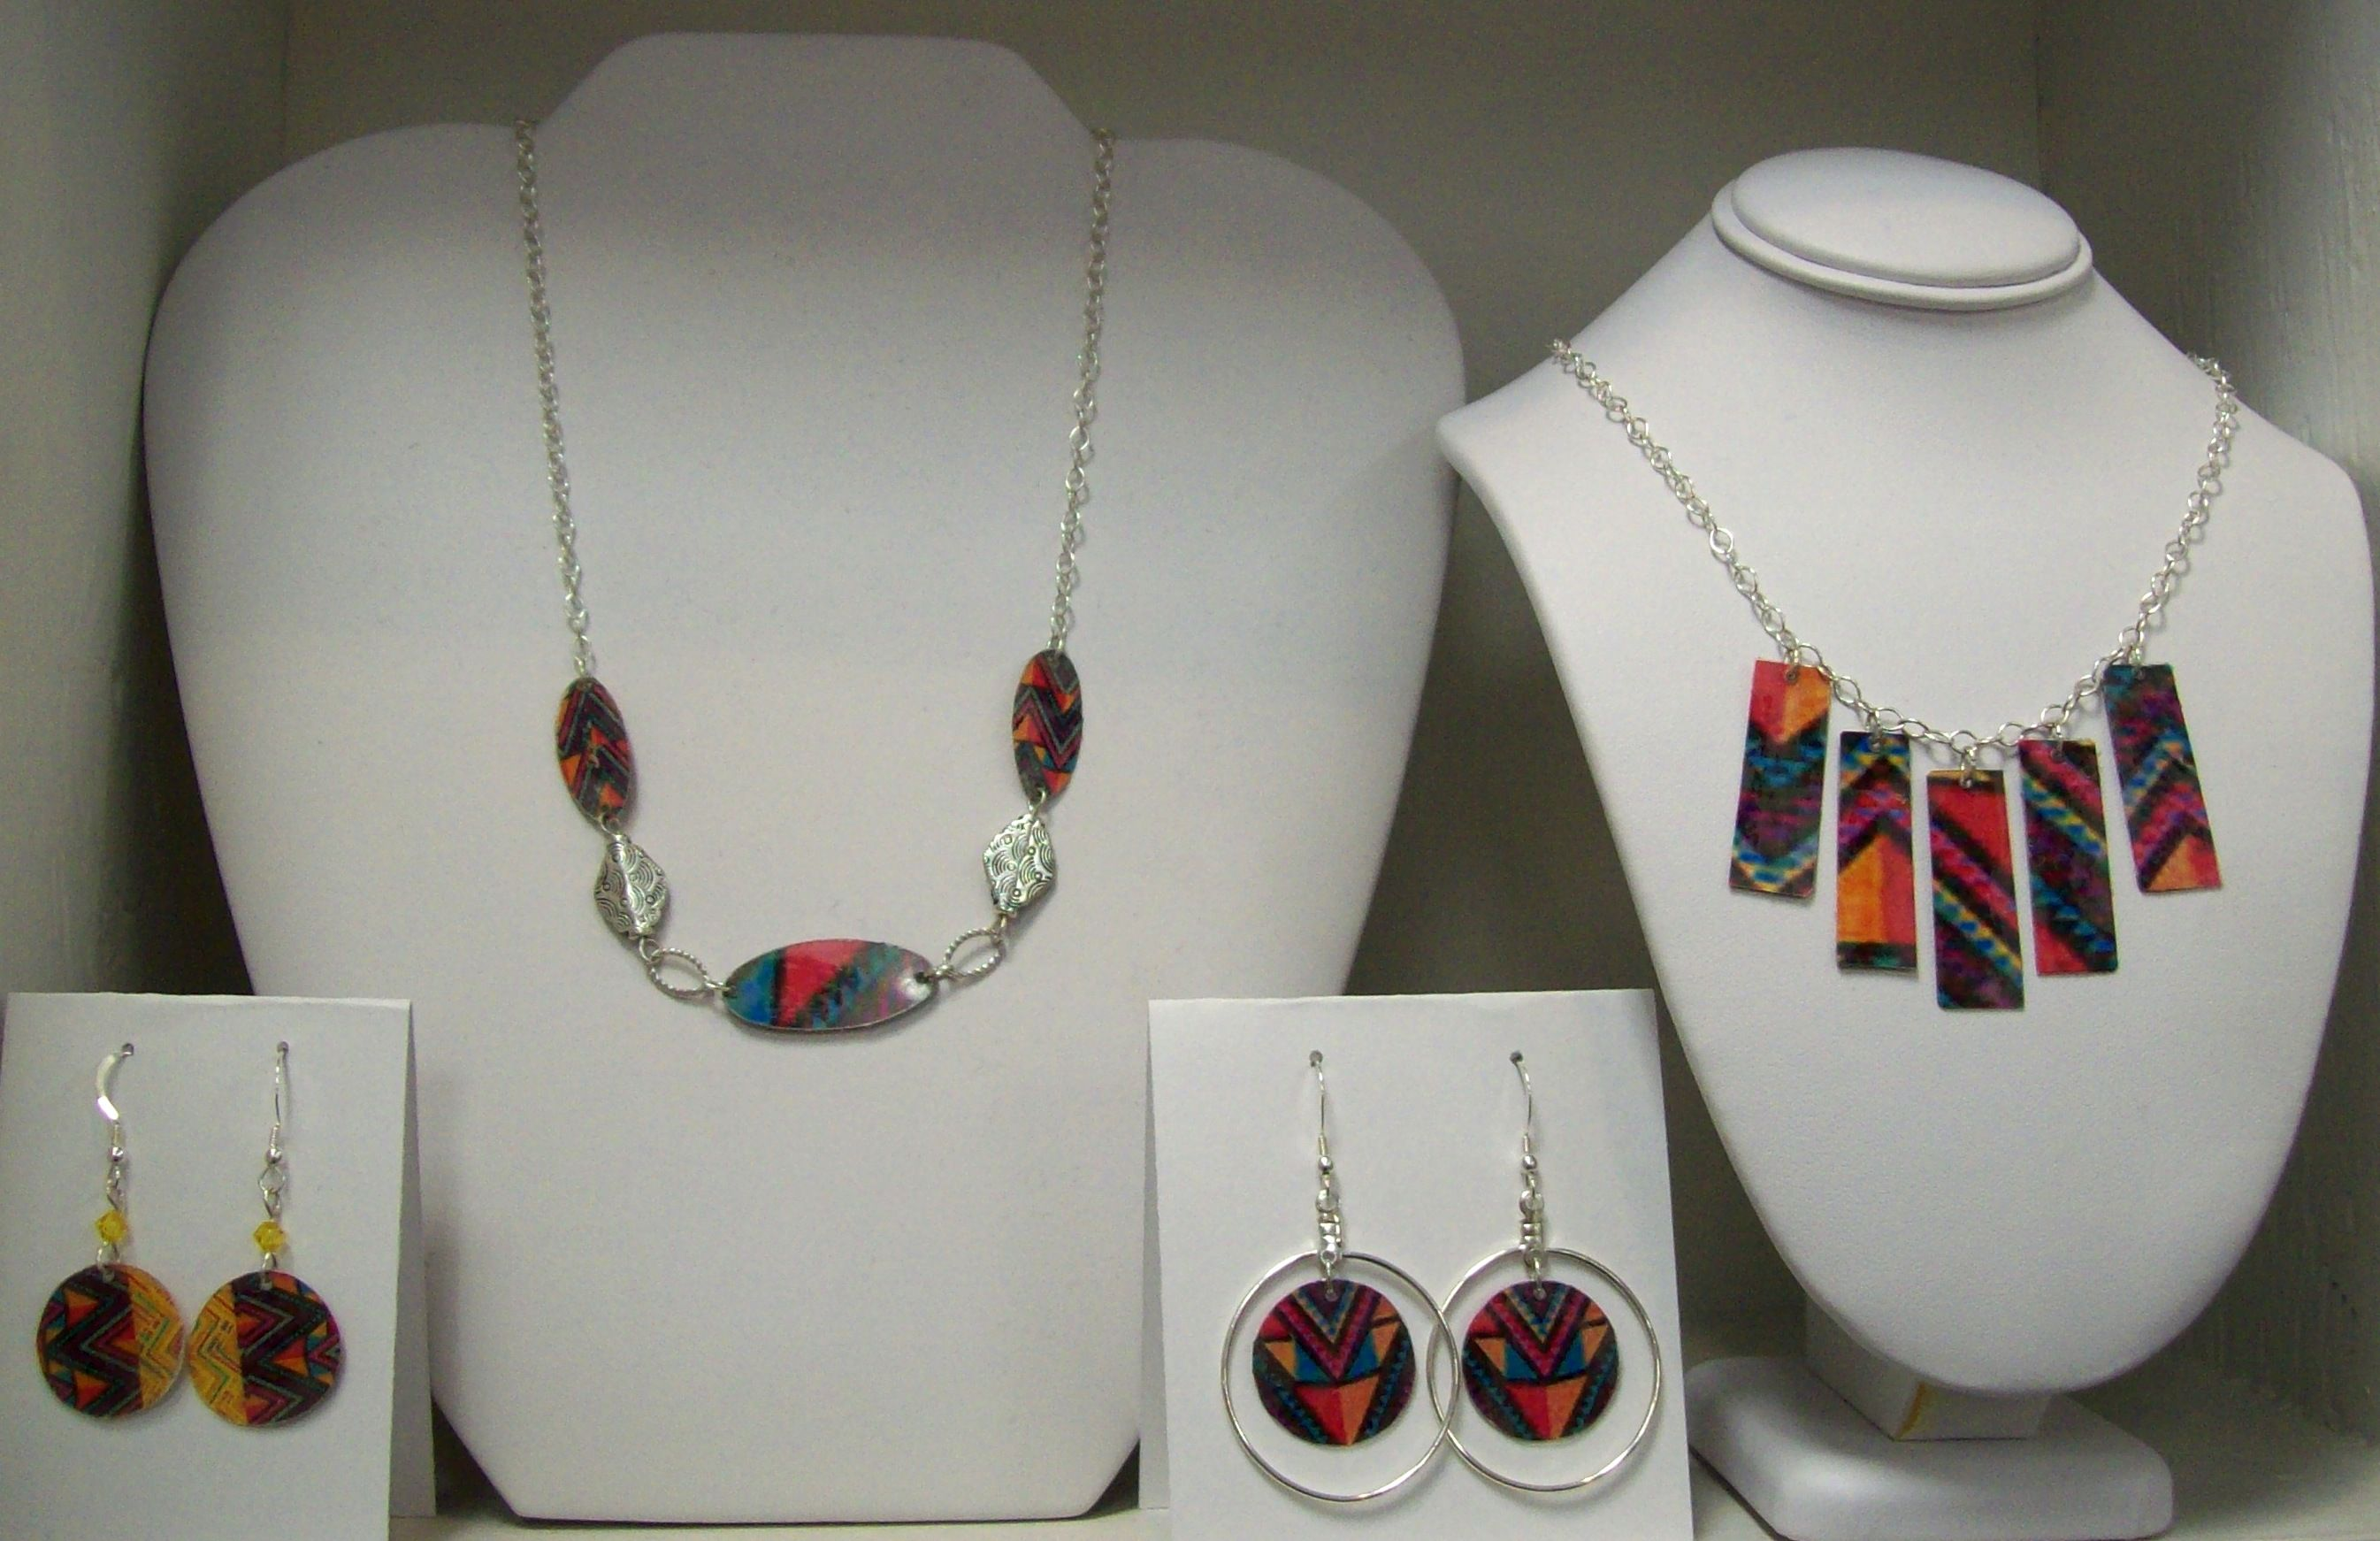 Frank Lloyd Wright Inspired Paper Jewelry Collection